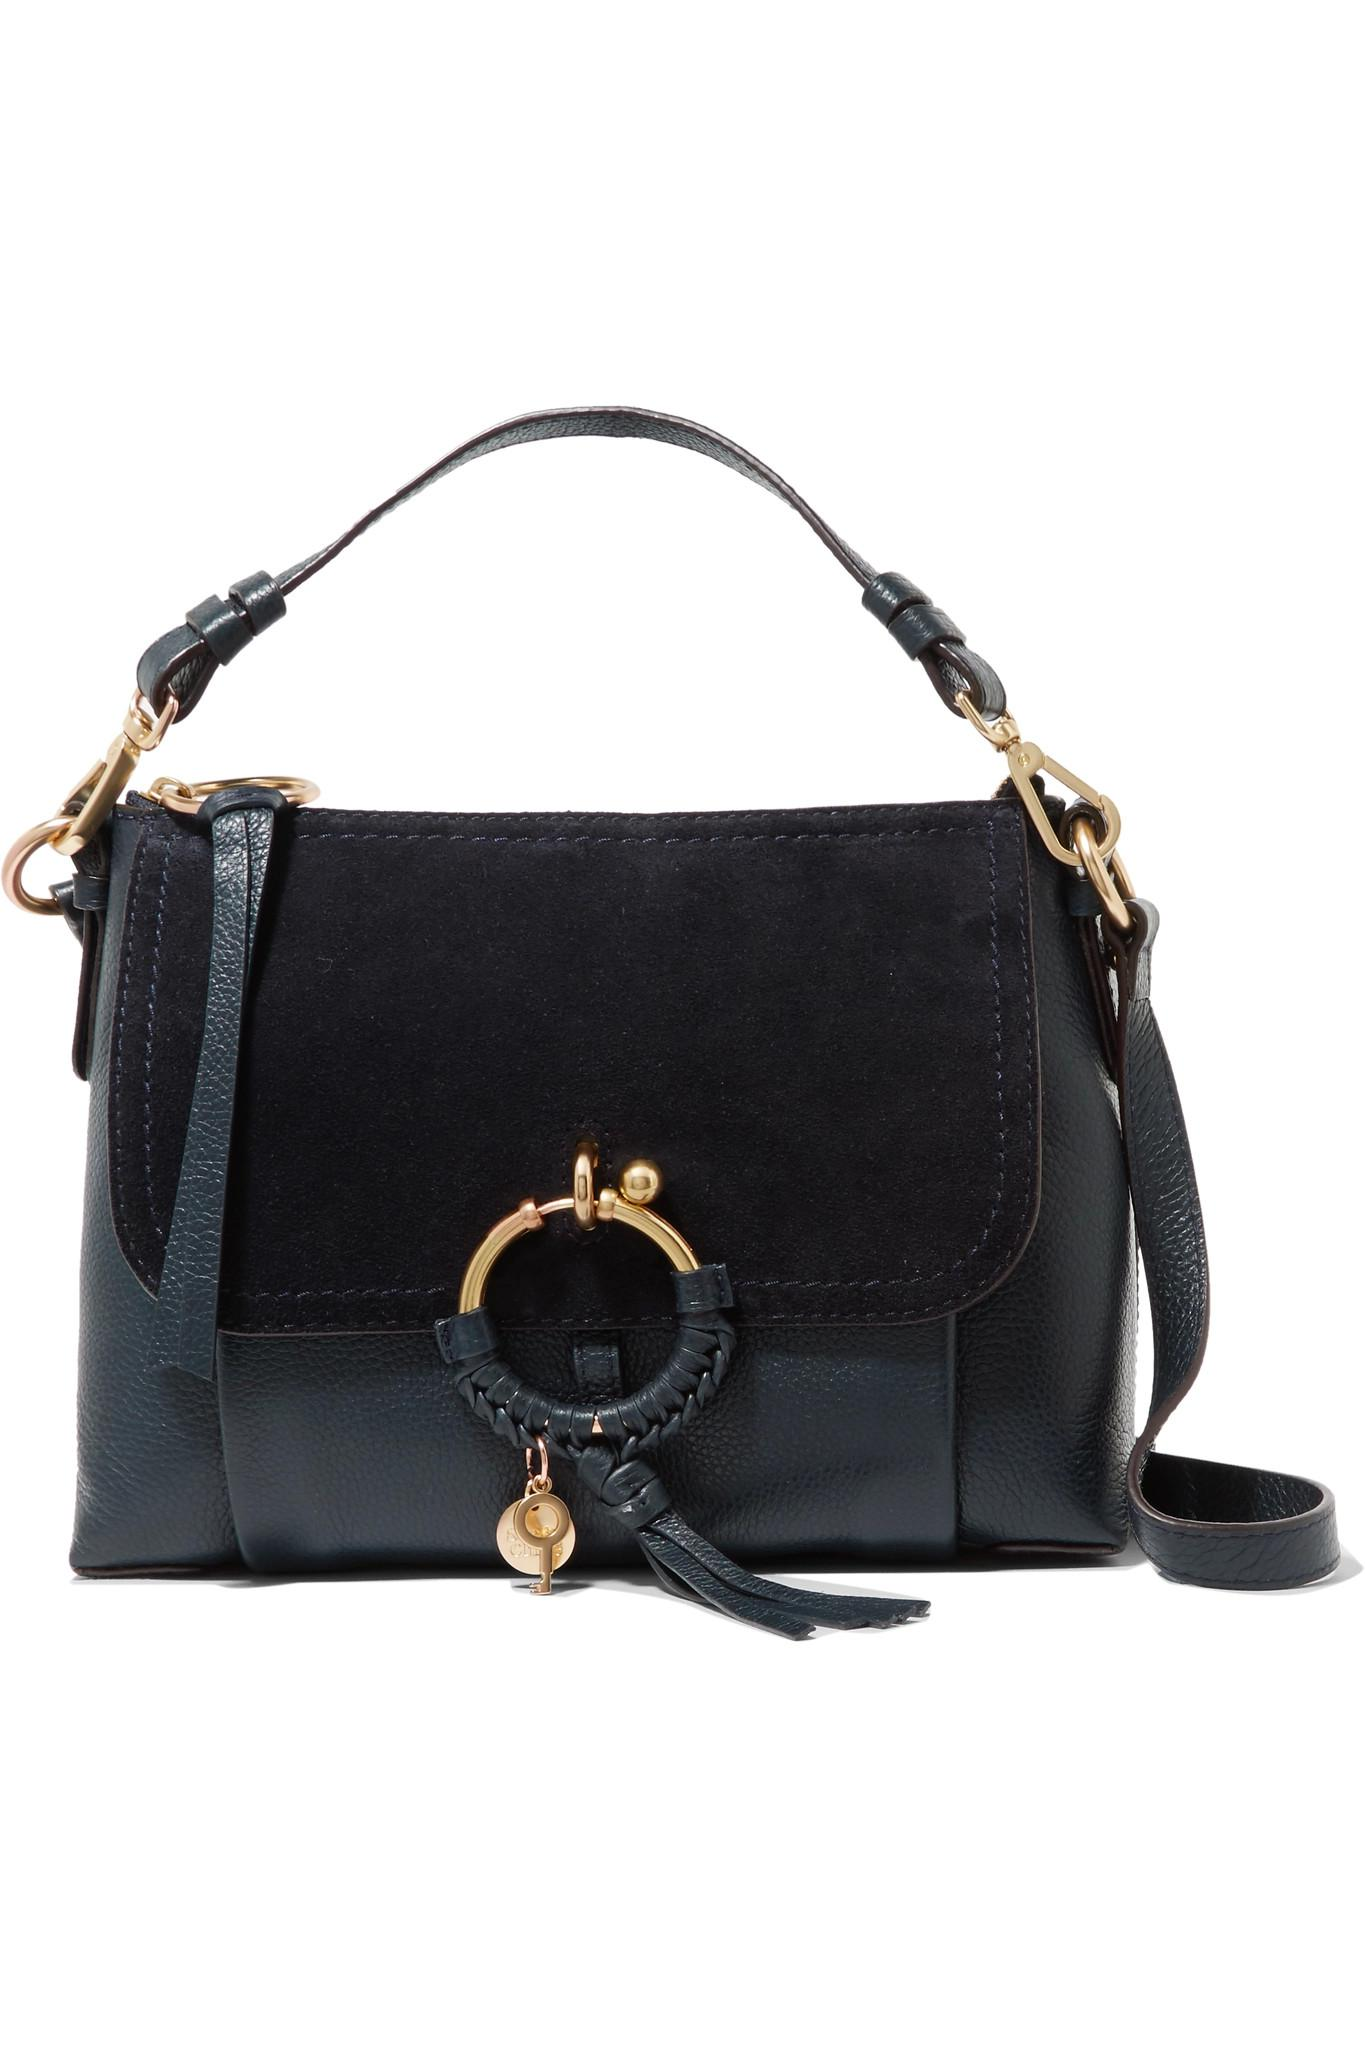 Joan Small Whipstitched Suede-paneled Textured-leather Shoulder Bag - Gray See By Chlo MgO3qiy